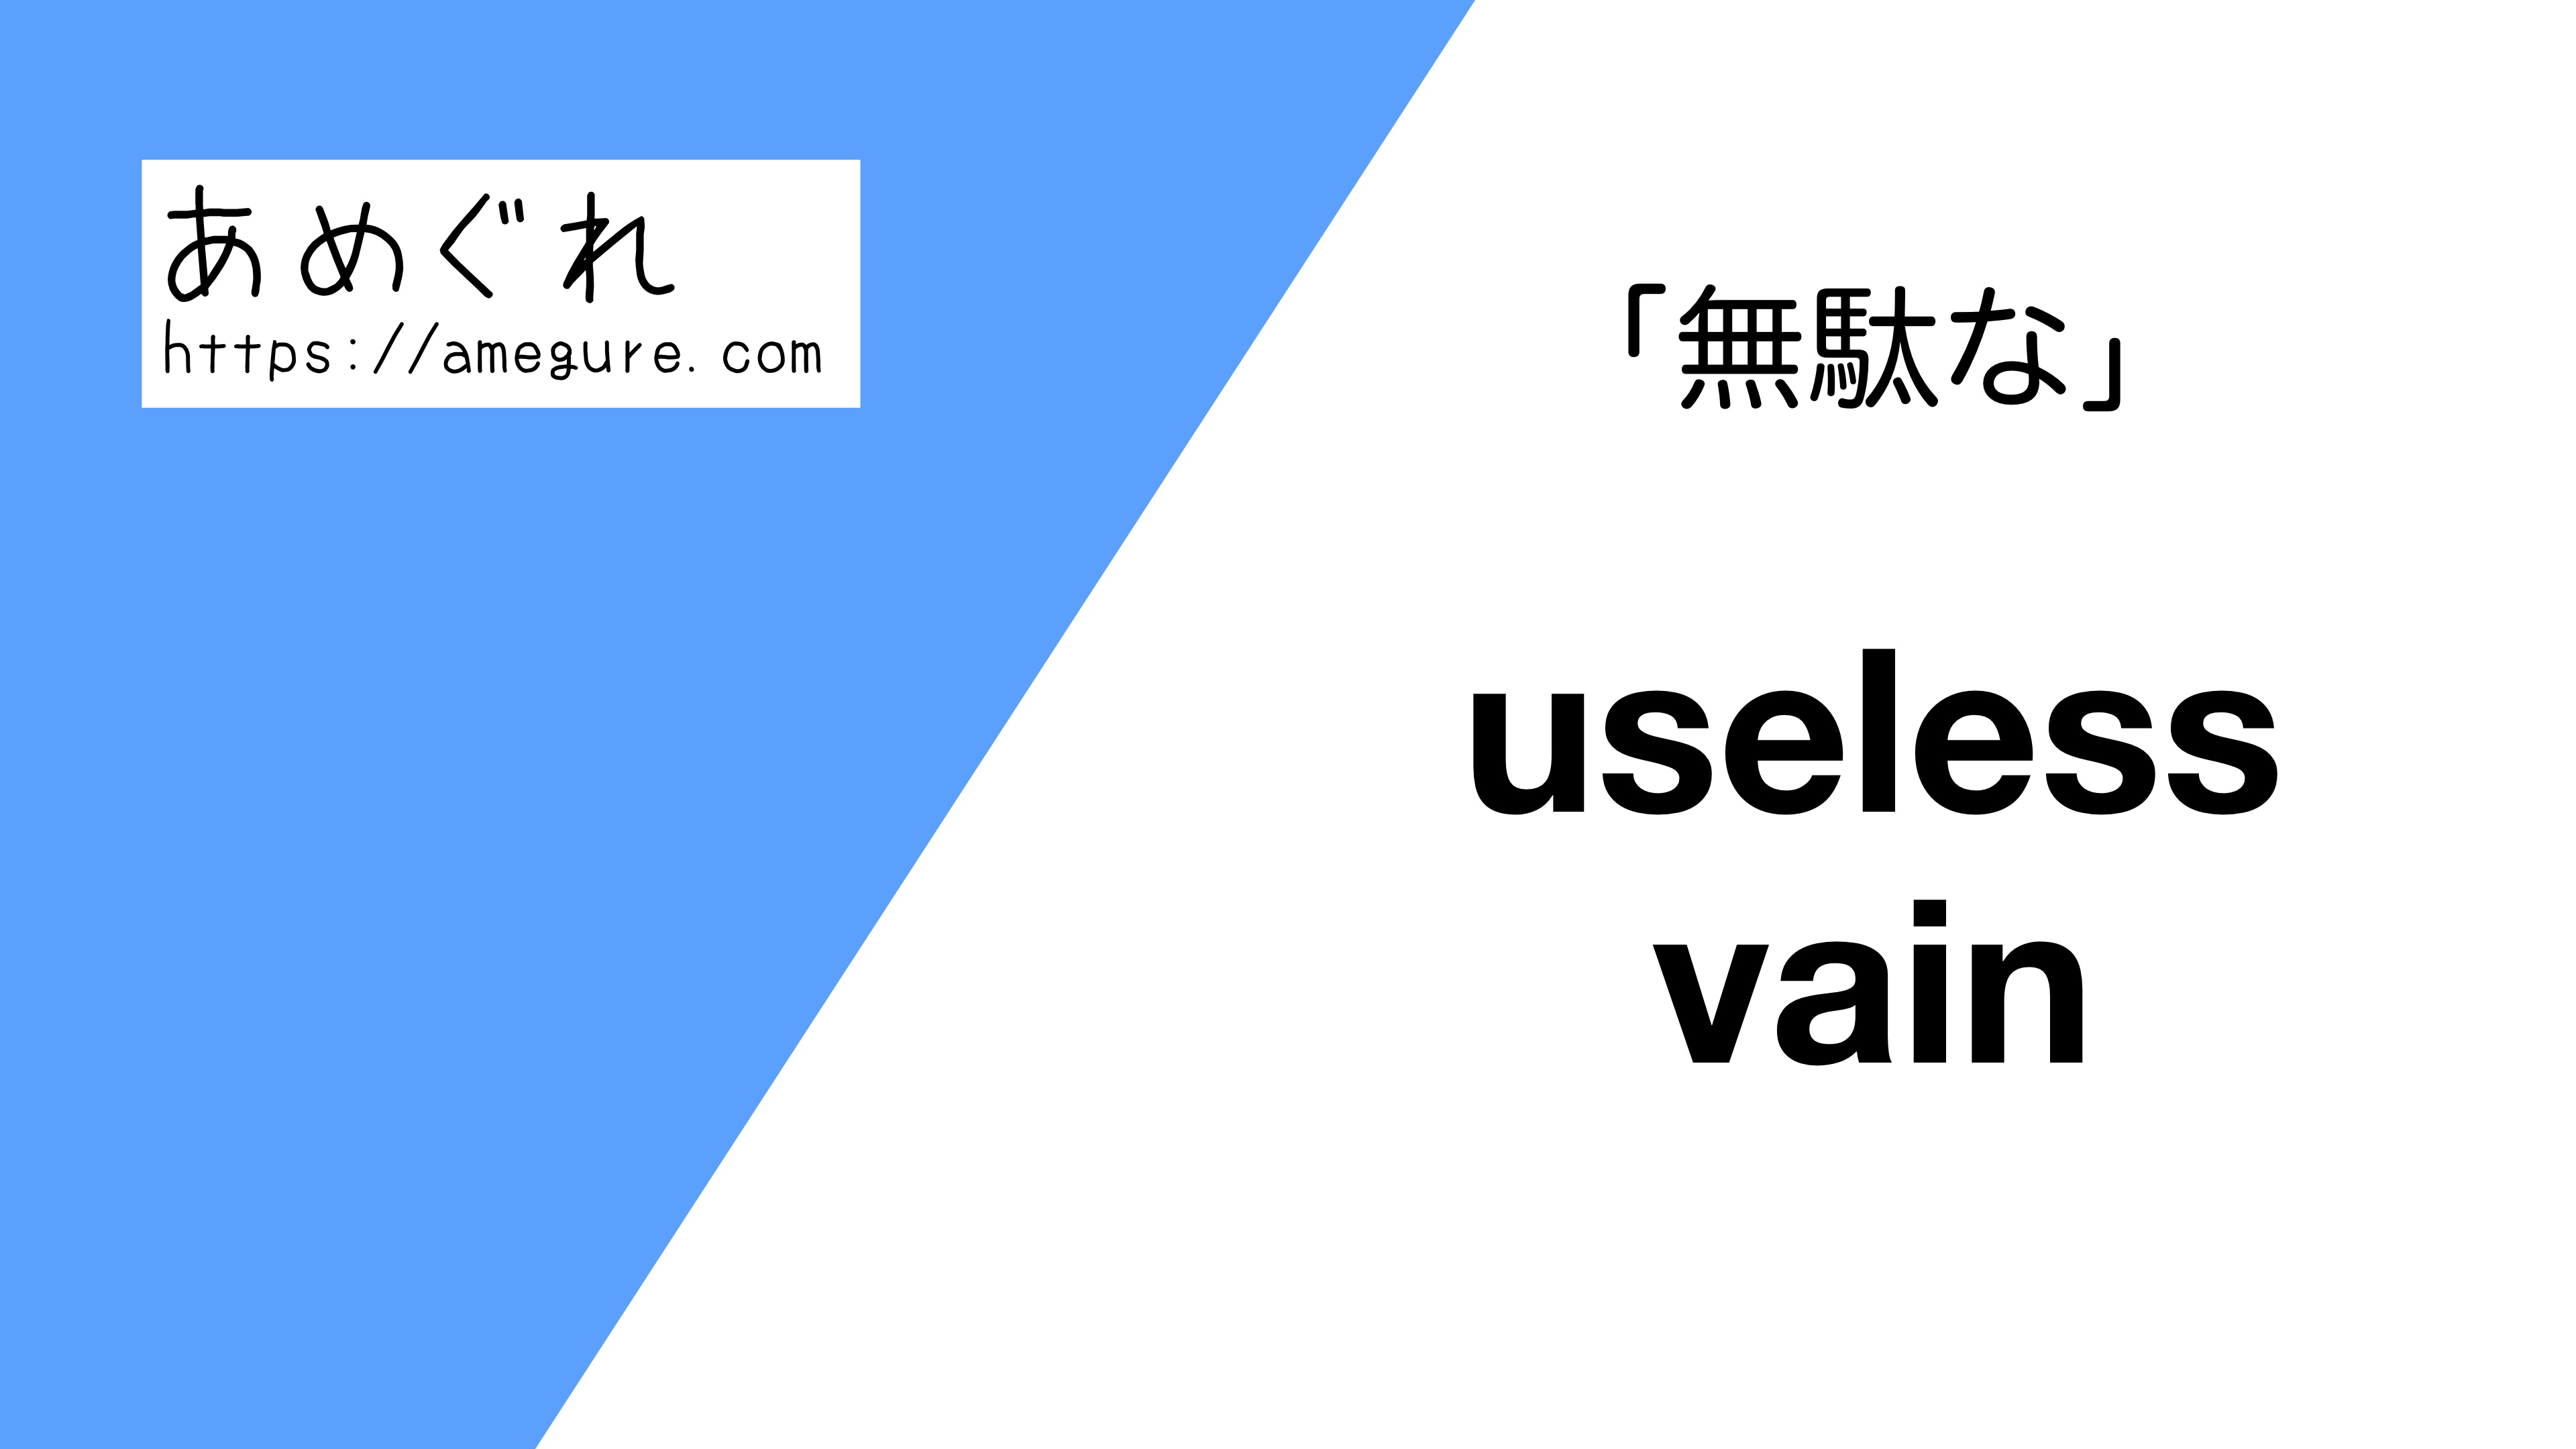 useless-vain違い